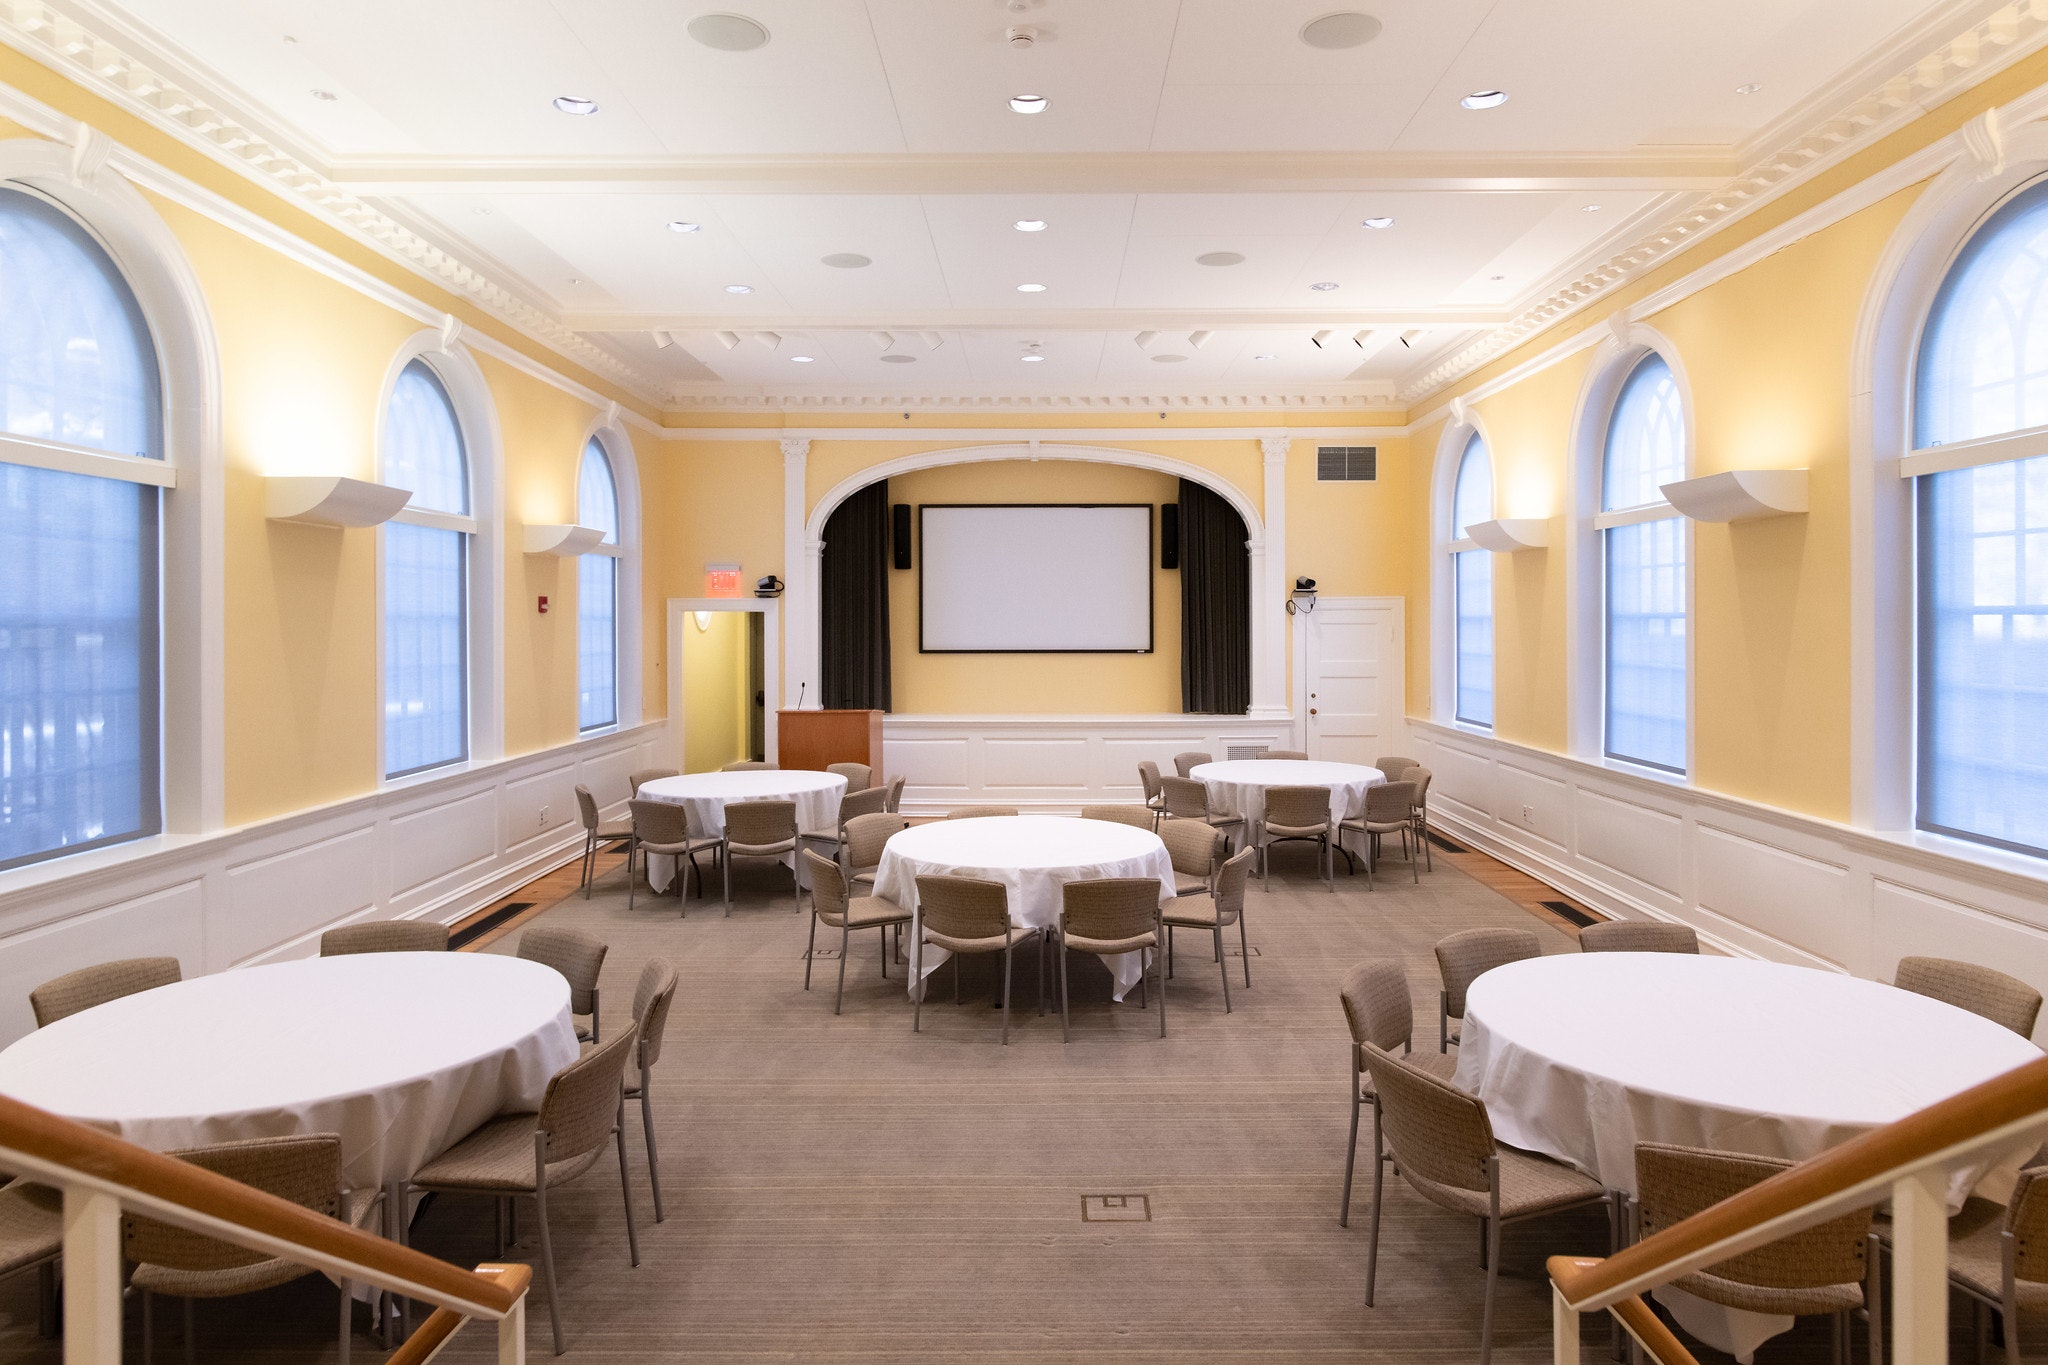 Banquet hall with five circular tables dressed in white table-cloth. Each table seats 8 people. White projector screen is mounted to the wall at the front of the room. View is from the entrance. Walls are yellow.